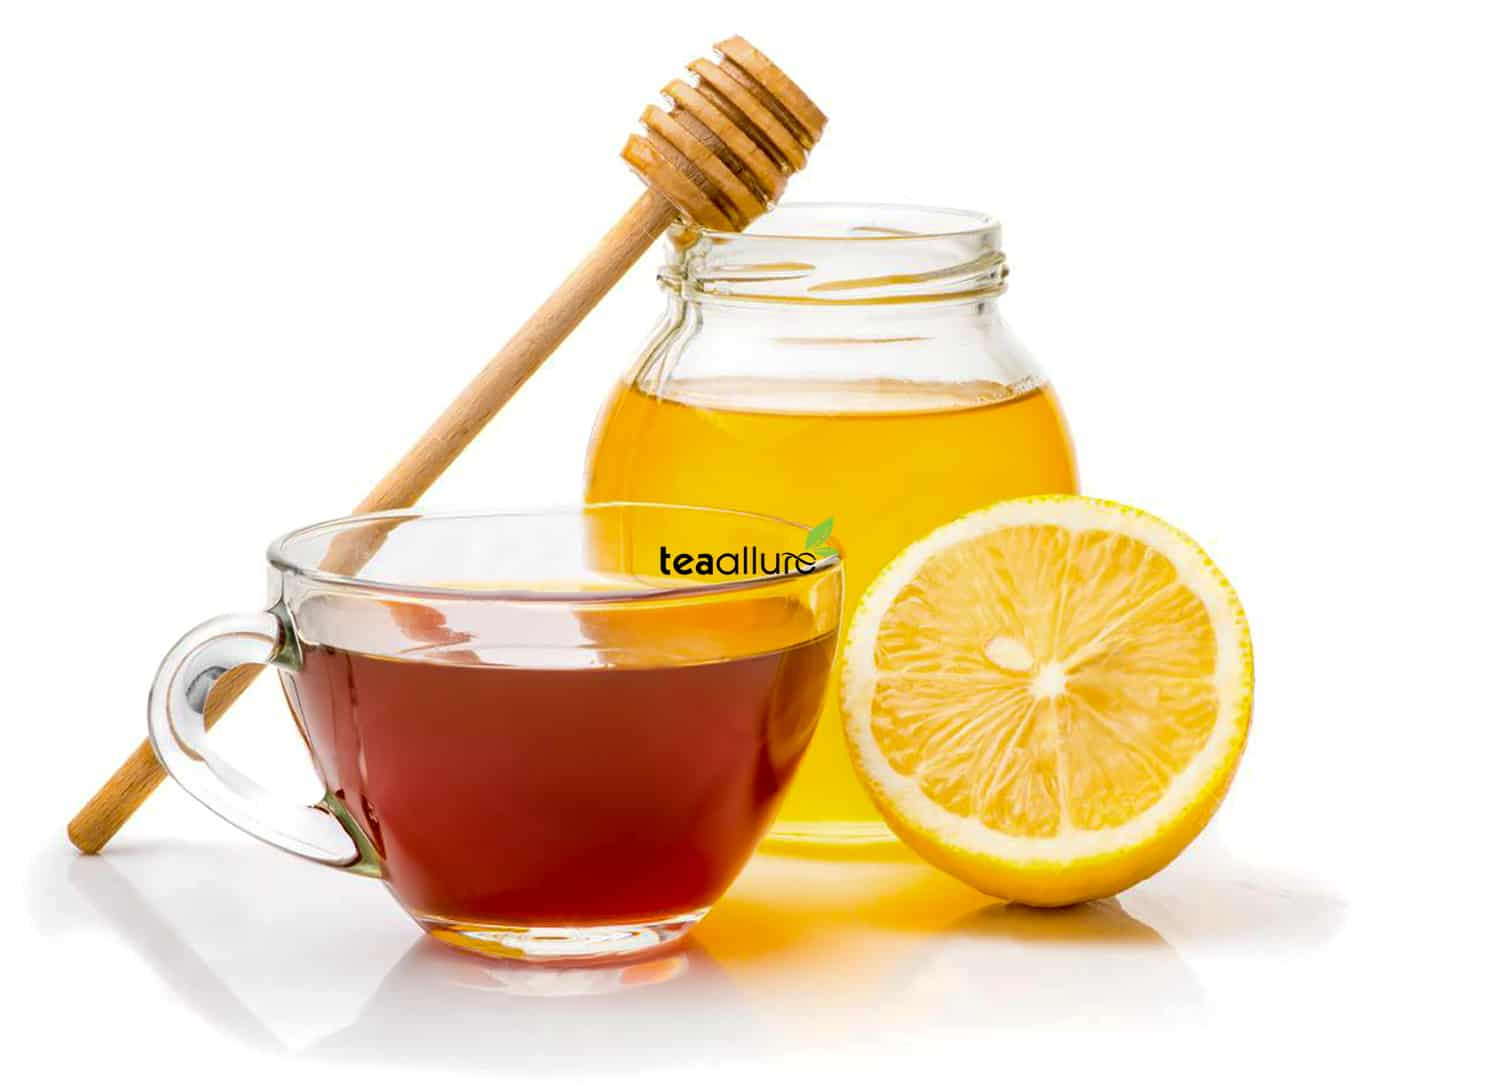 Black tea with lemon & honey